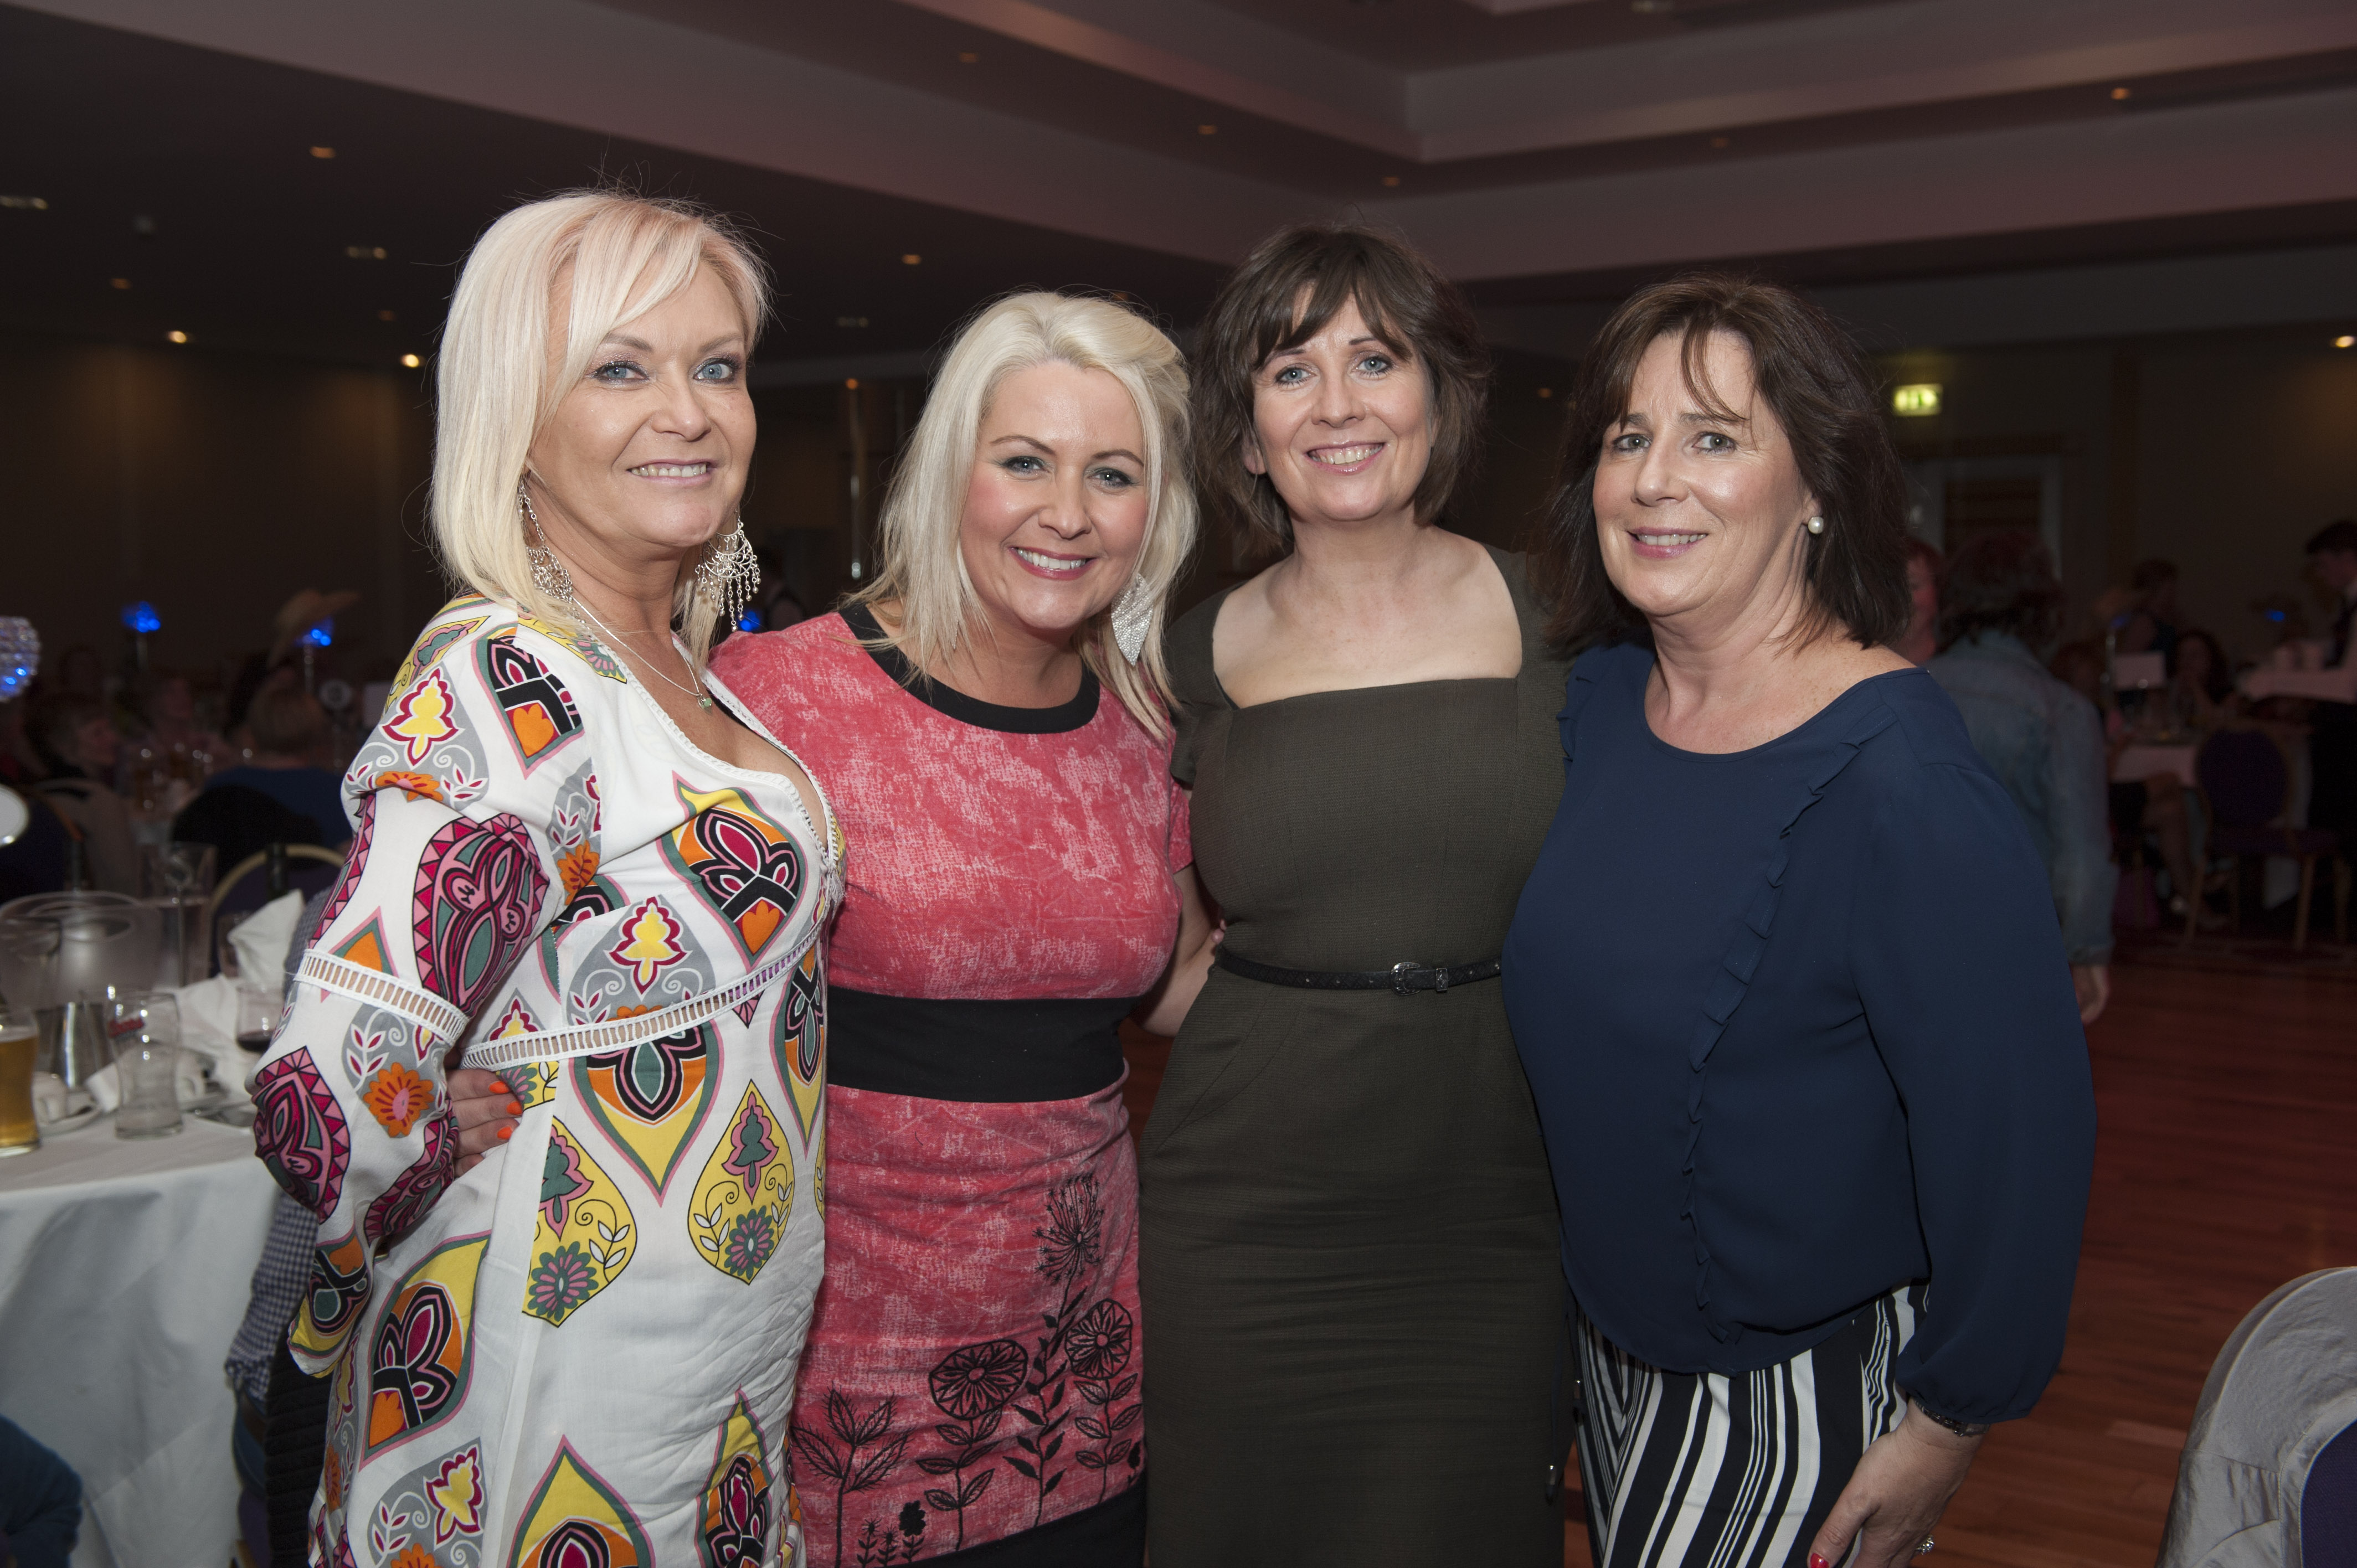 Pictured at Pat The President's Country Music & Western Night were (L-R) Cathy Lavery, Audri Herron, Pauline McKenna and Ann Lowry. ©Rory Geary/The Northern Standard